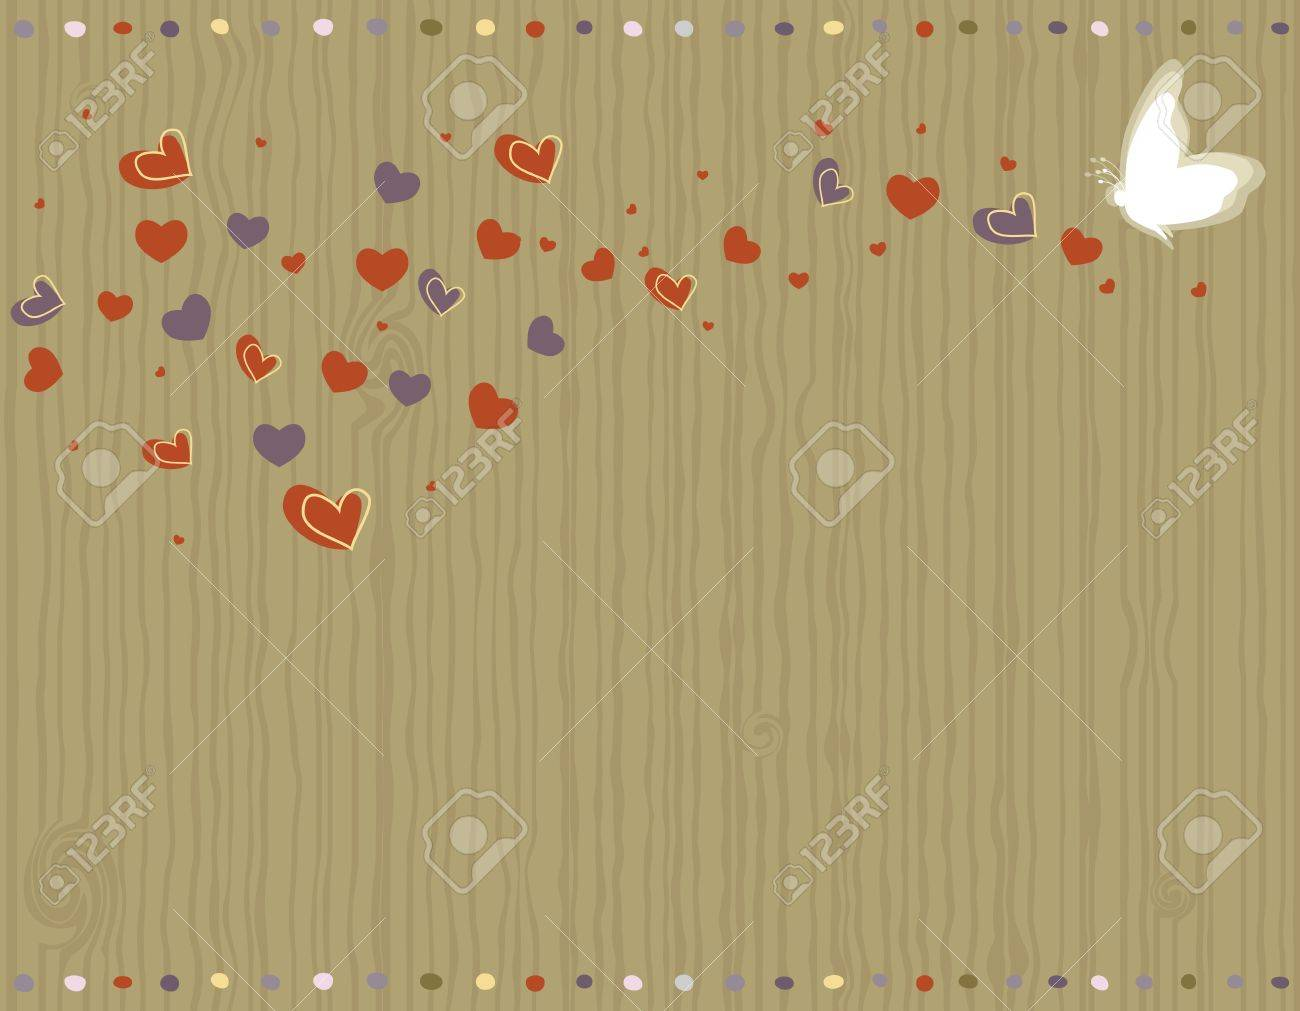 Valentine Day - love greeting card with hearts and butterfly. Stock Vector - 12073450